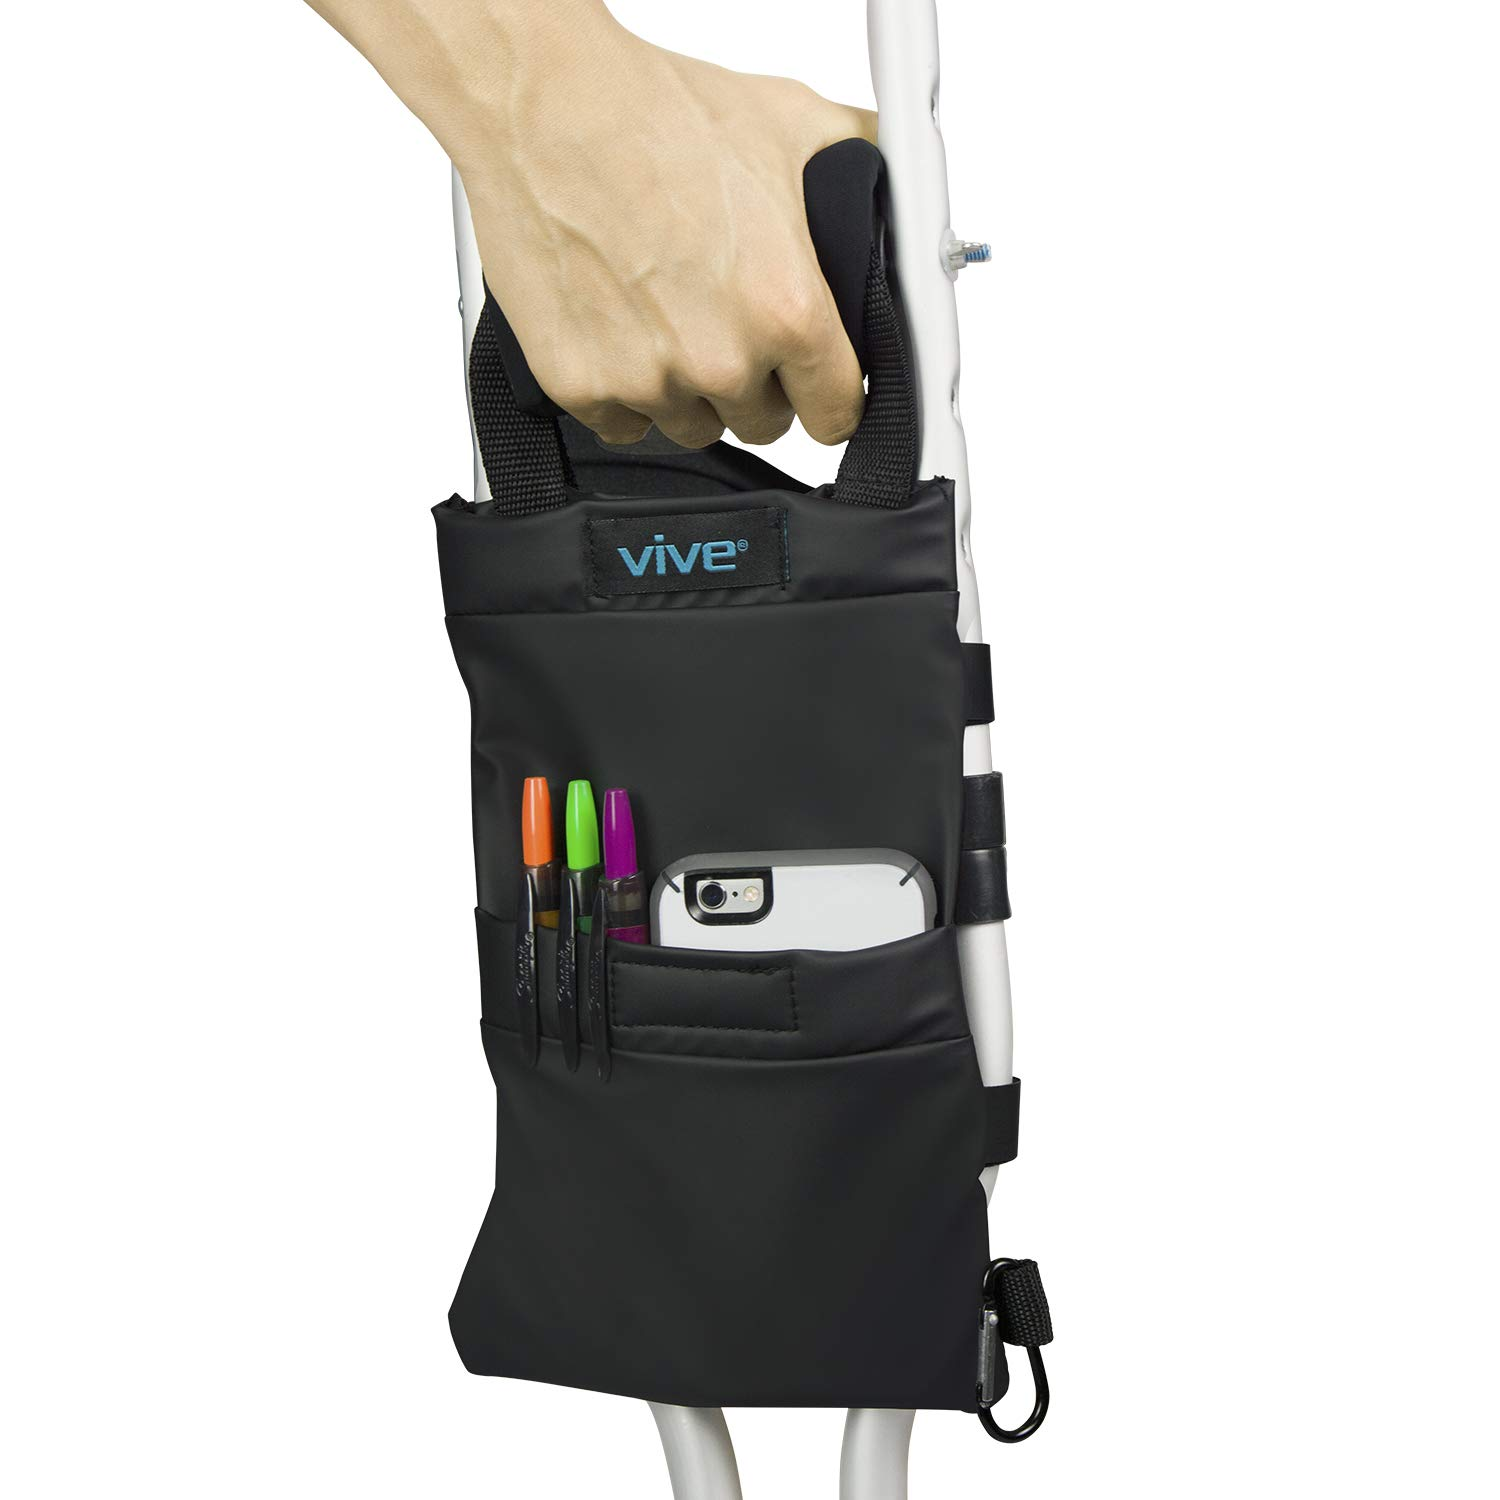 Vive Crutch Bag - Pouch with Foam Hand Grip Pads - Tote for Broken Leg Crutches with Storage Pockets - Ergonomic, Orthopedic, Lightweight Carry On - Medical Forearm Crutch Accessories for Women, Men